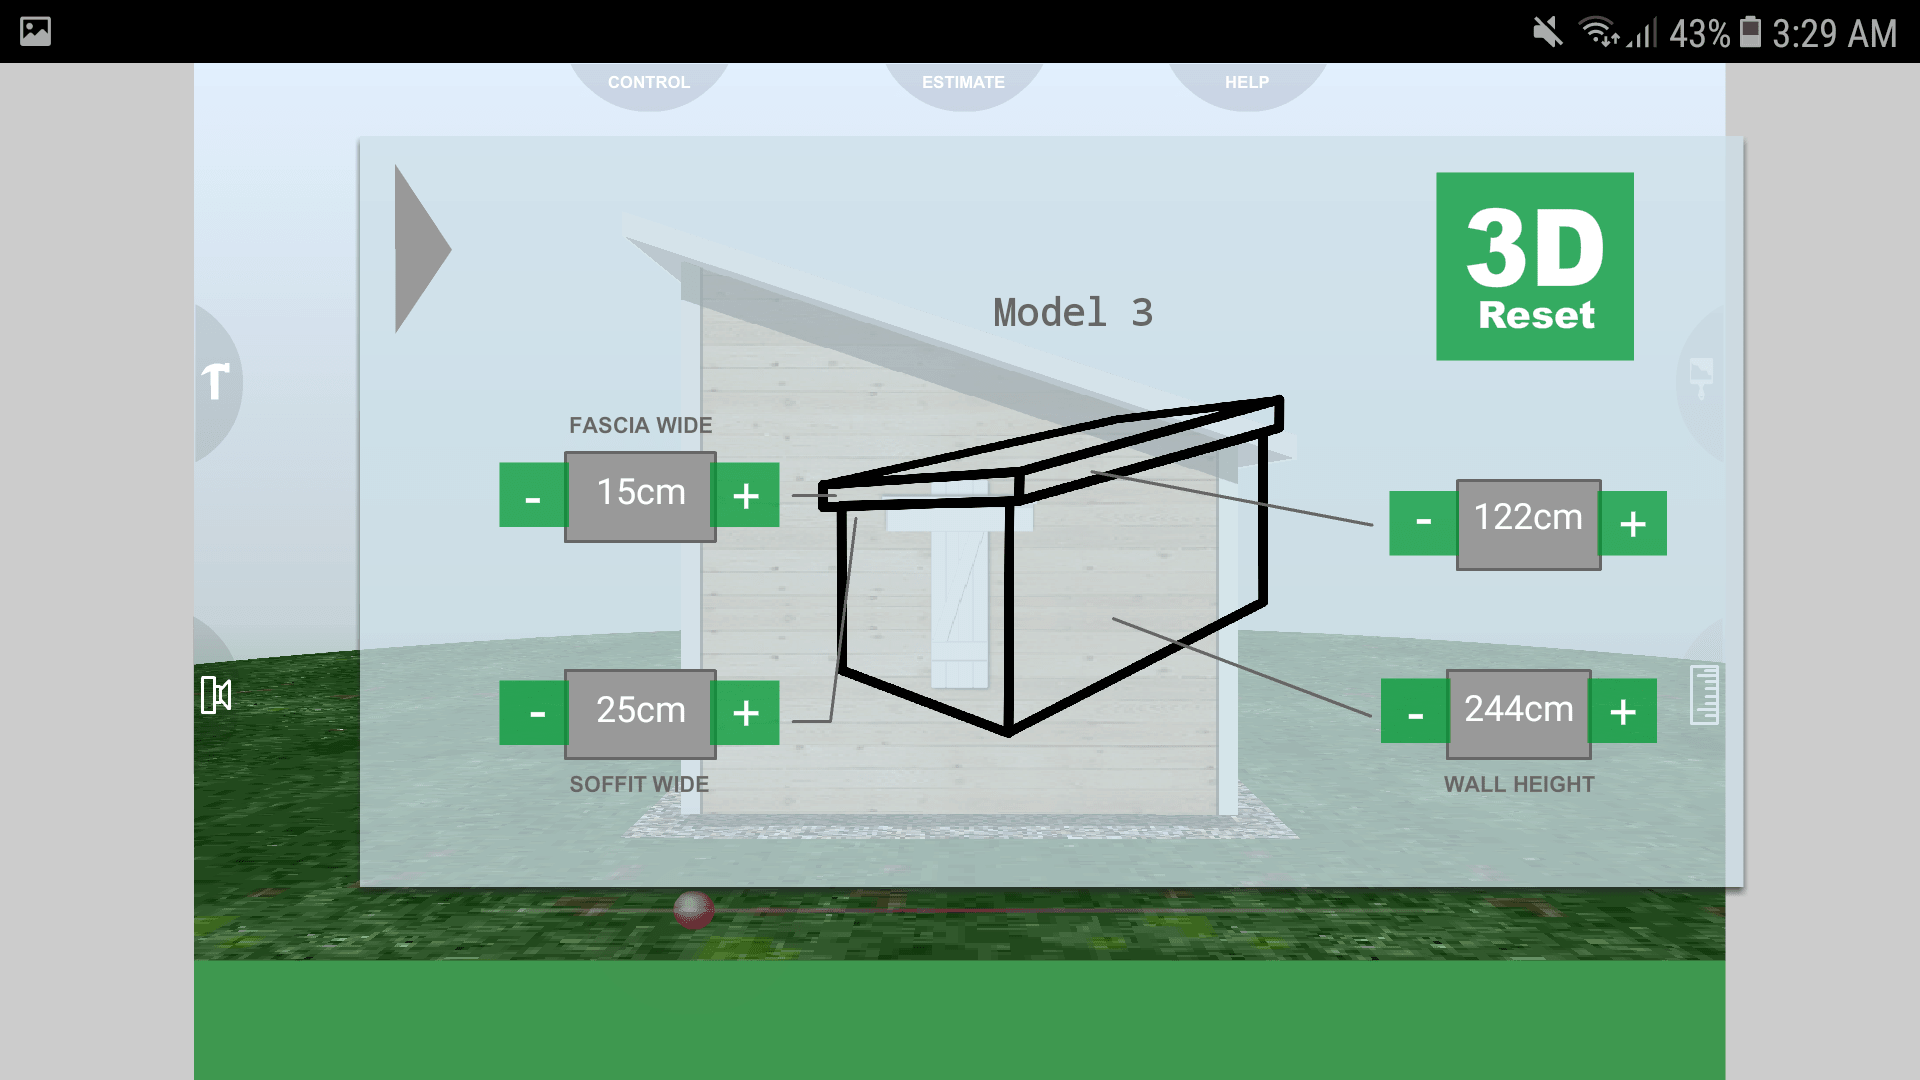 5 Top Shed Design Software Options (Free and Paid - 2018)